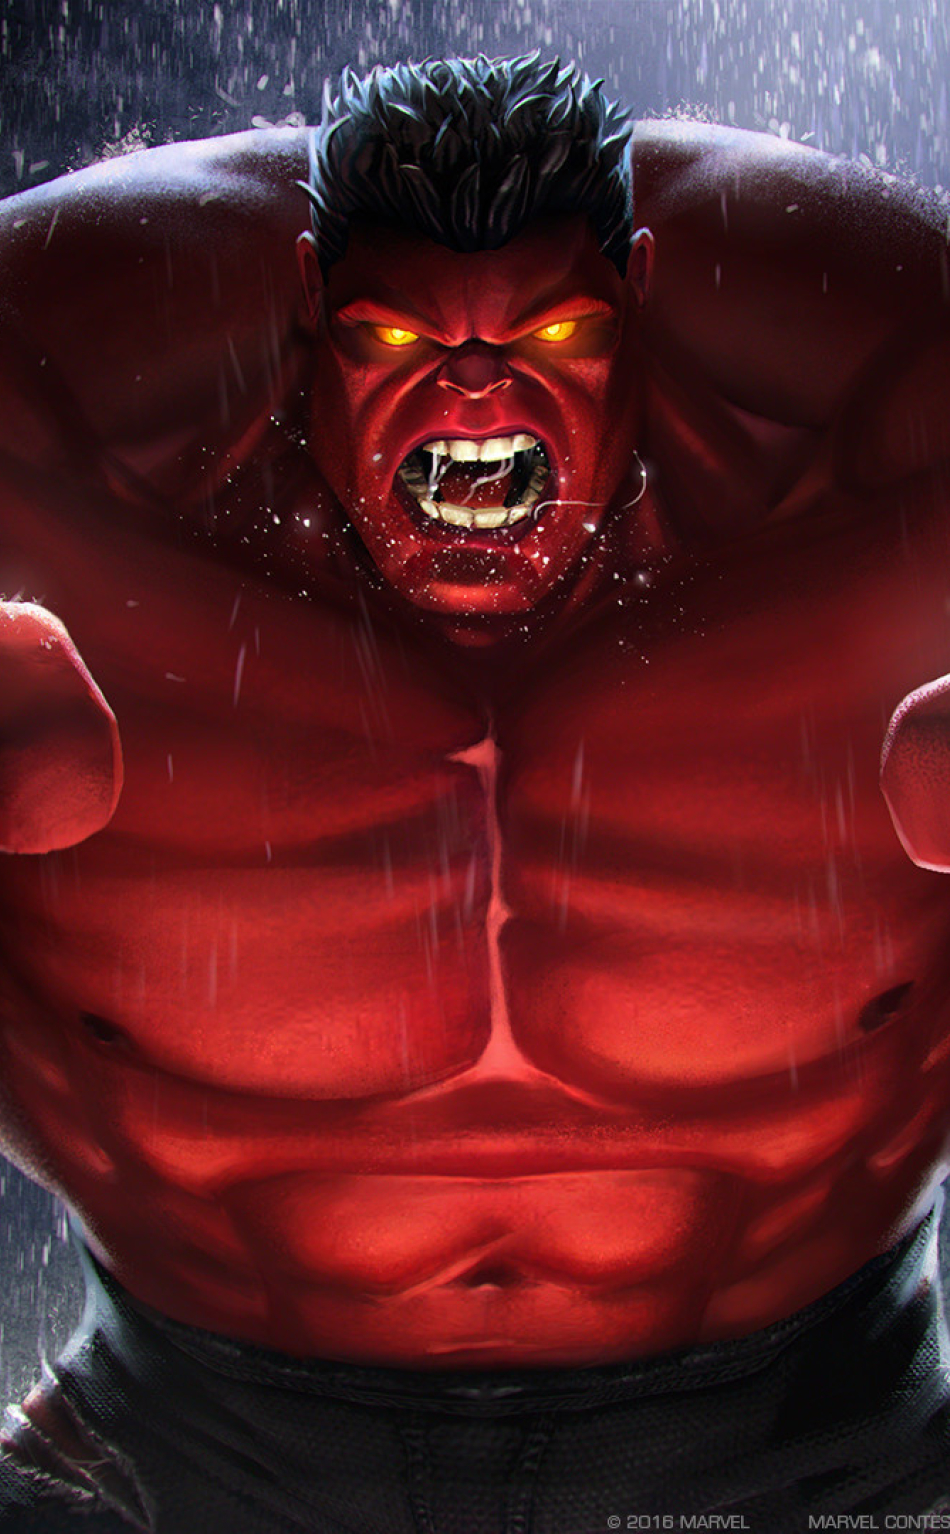 Red Hulk Marvel Contest Of Champions, Full HD Wallpaper